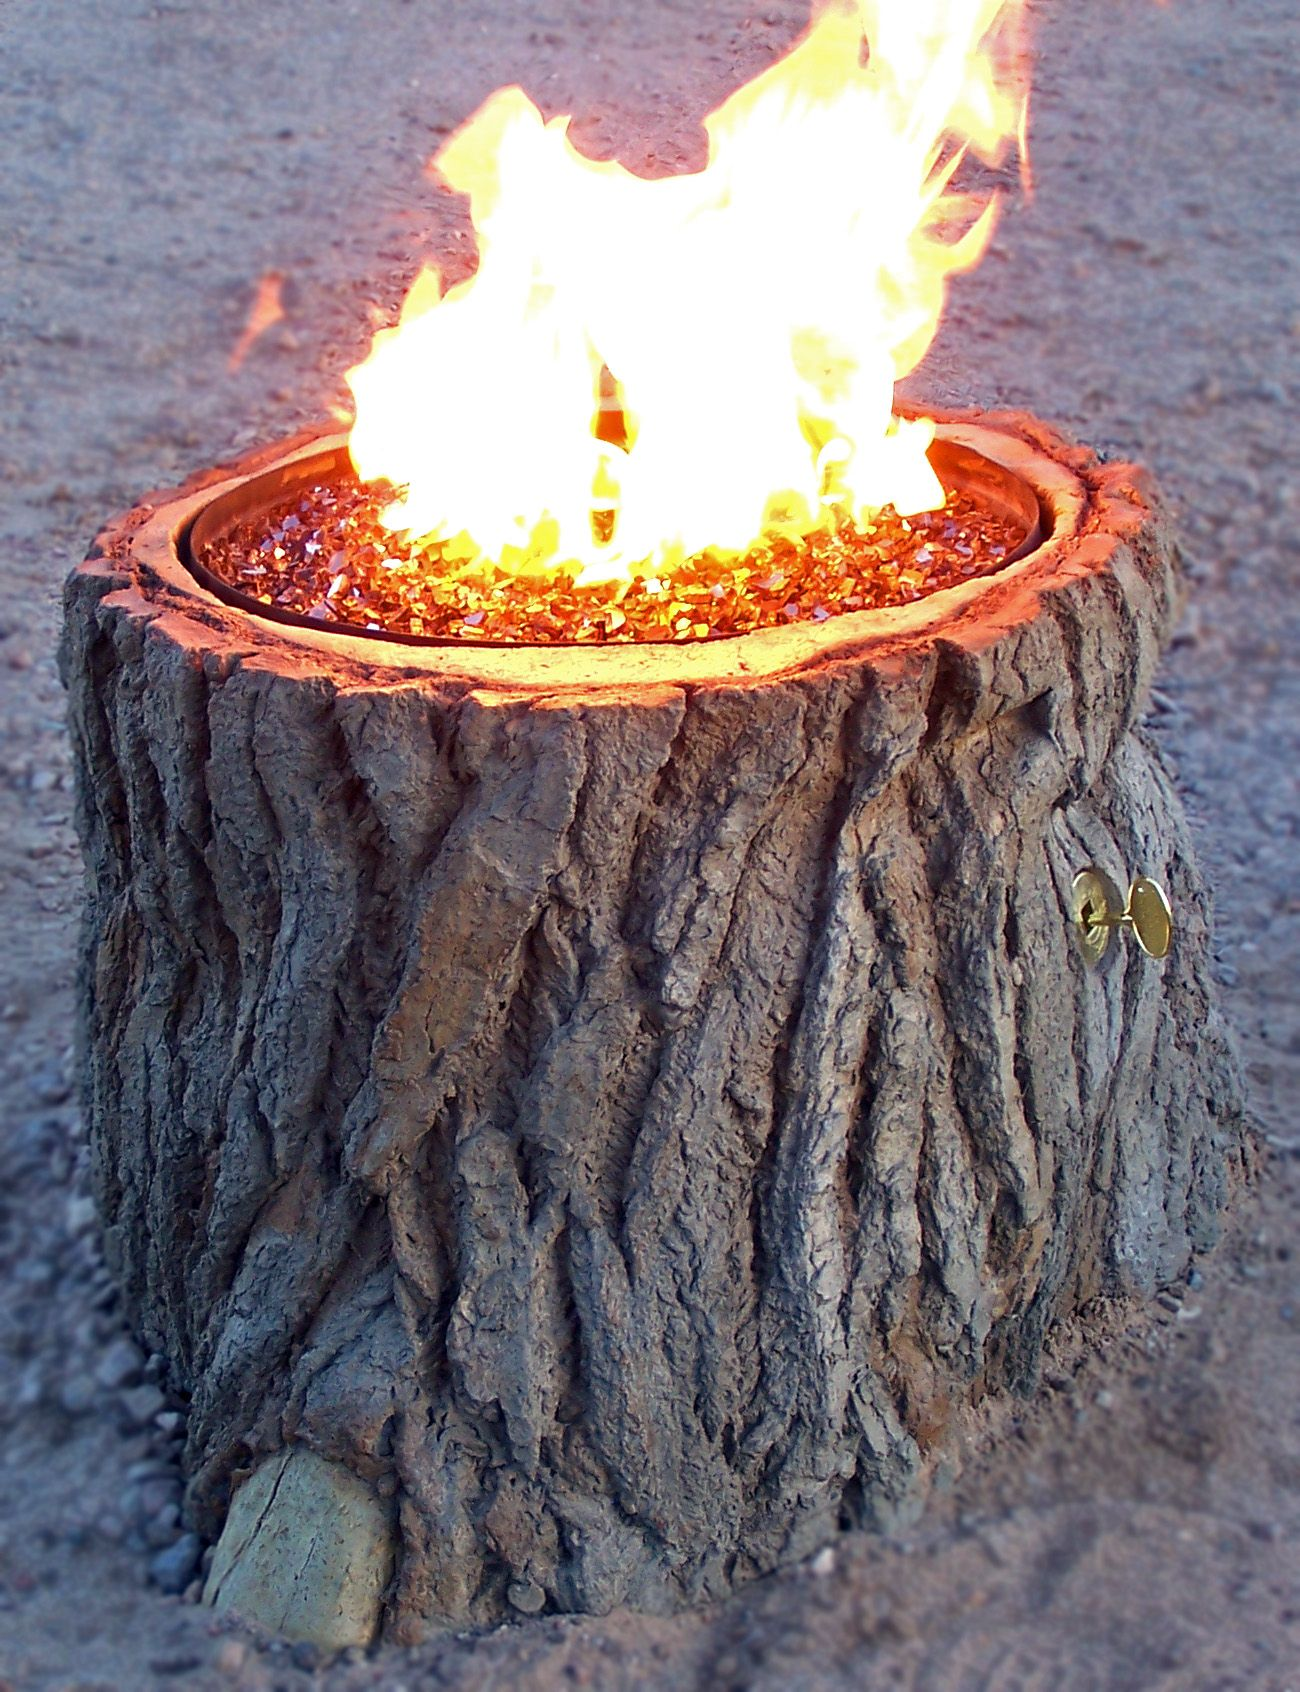 now thats a great looking tree stump fire pit built out of